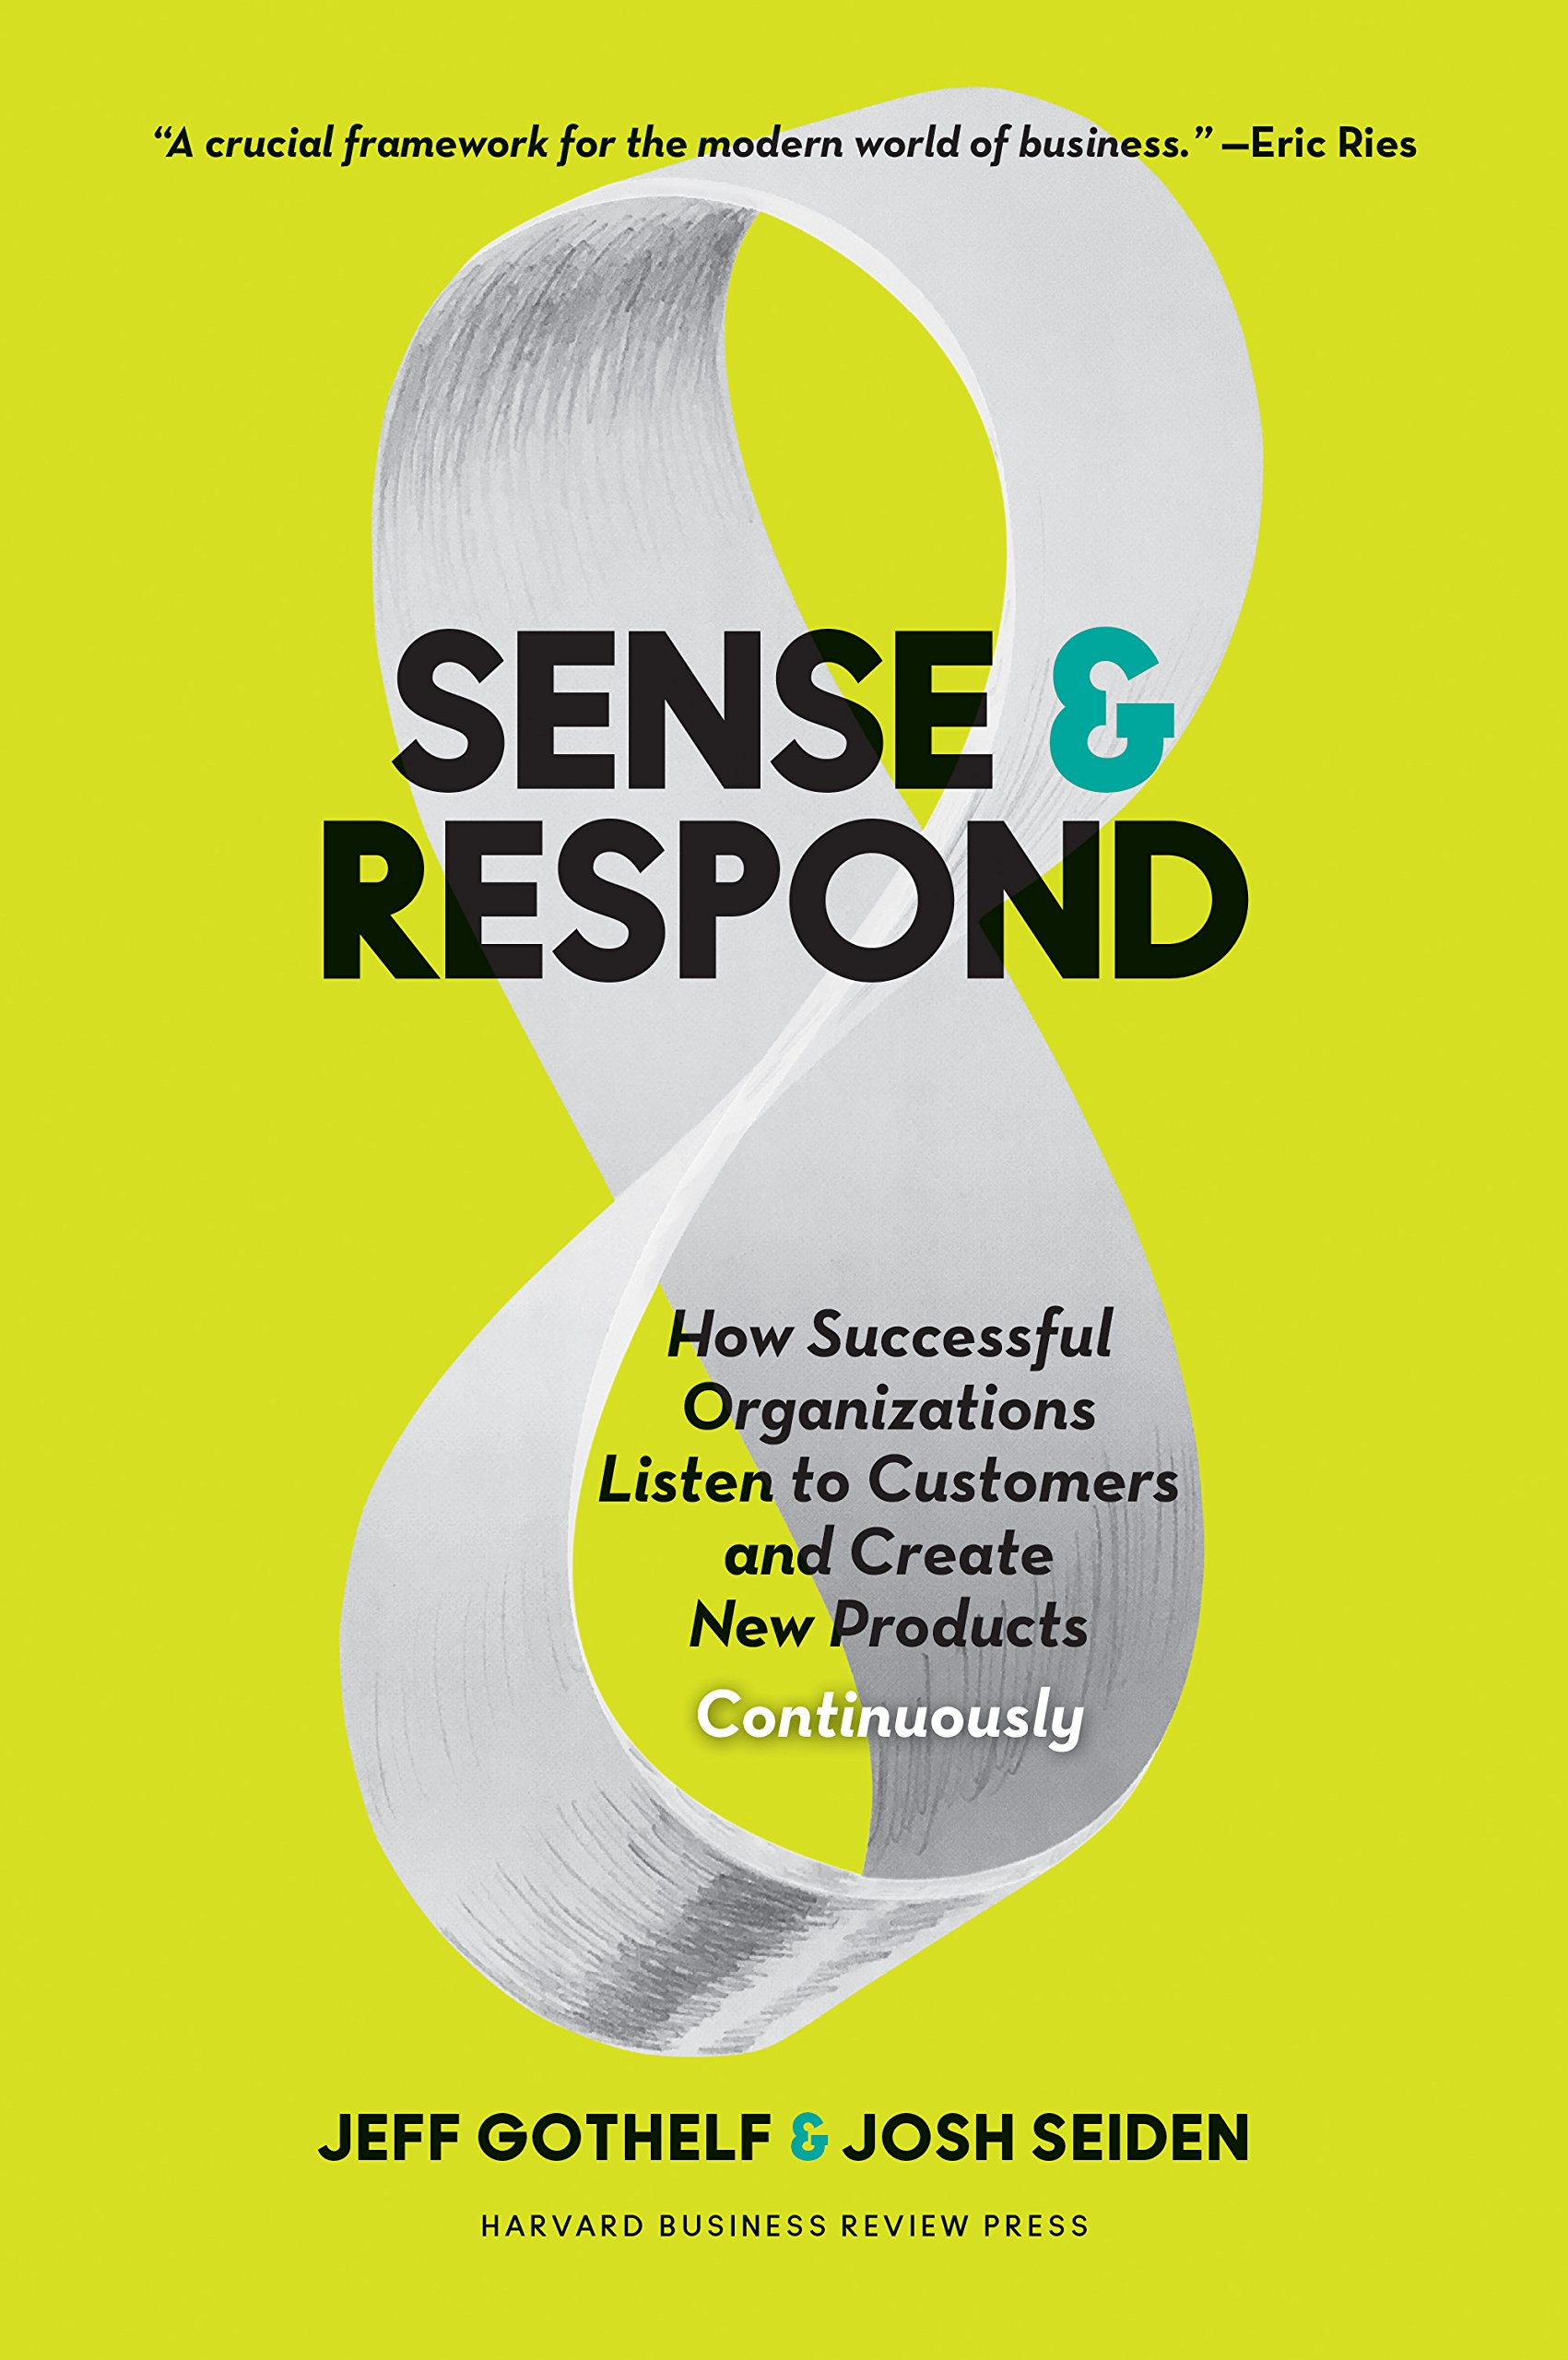 Sense and respond book cover